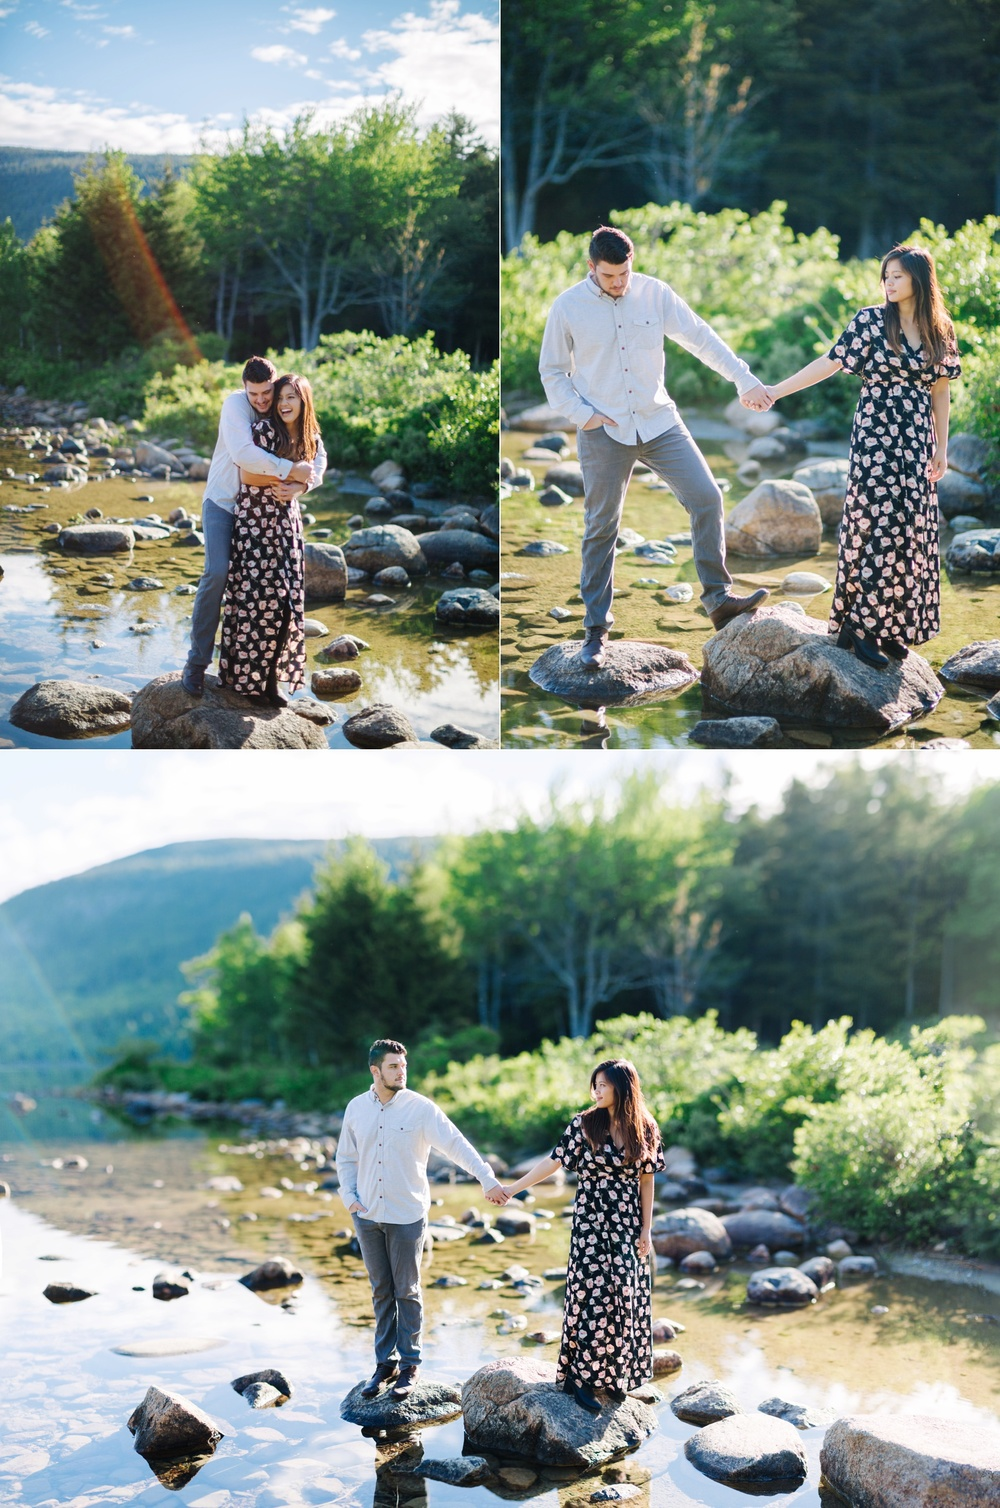 jake and jill acacdia national park engagement session cadillac mountain engagement session jordan pond engagement session maine engagement session jake and katie_0026